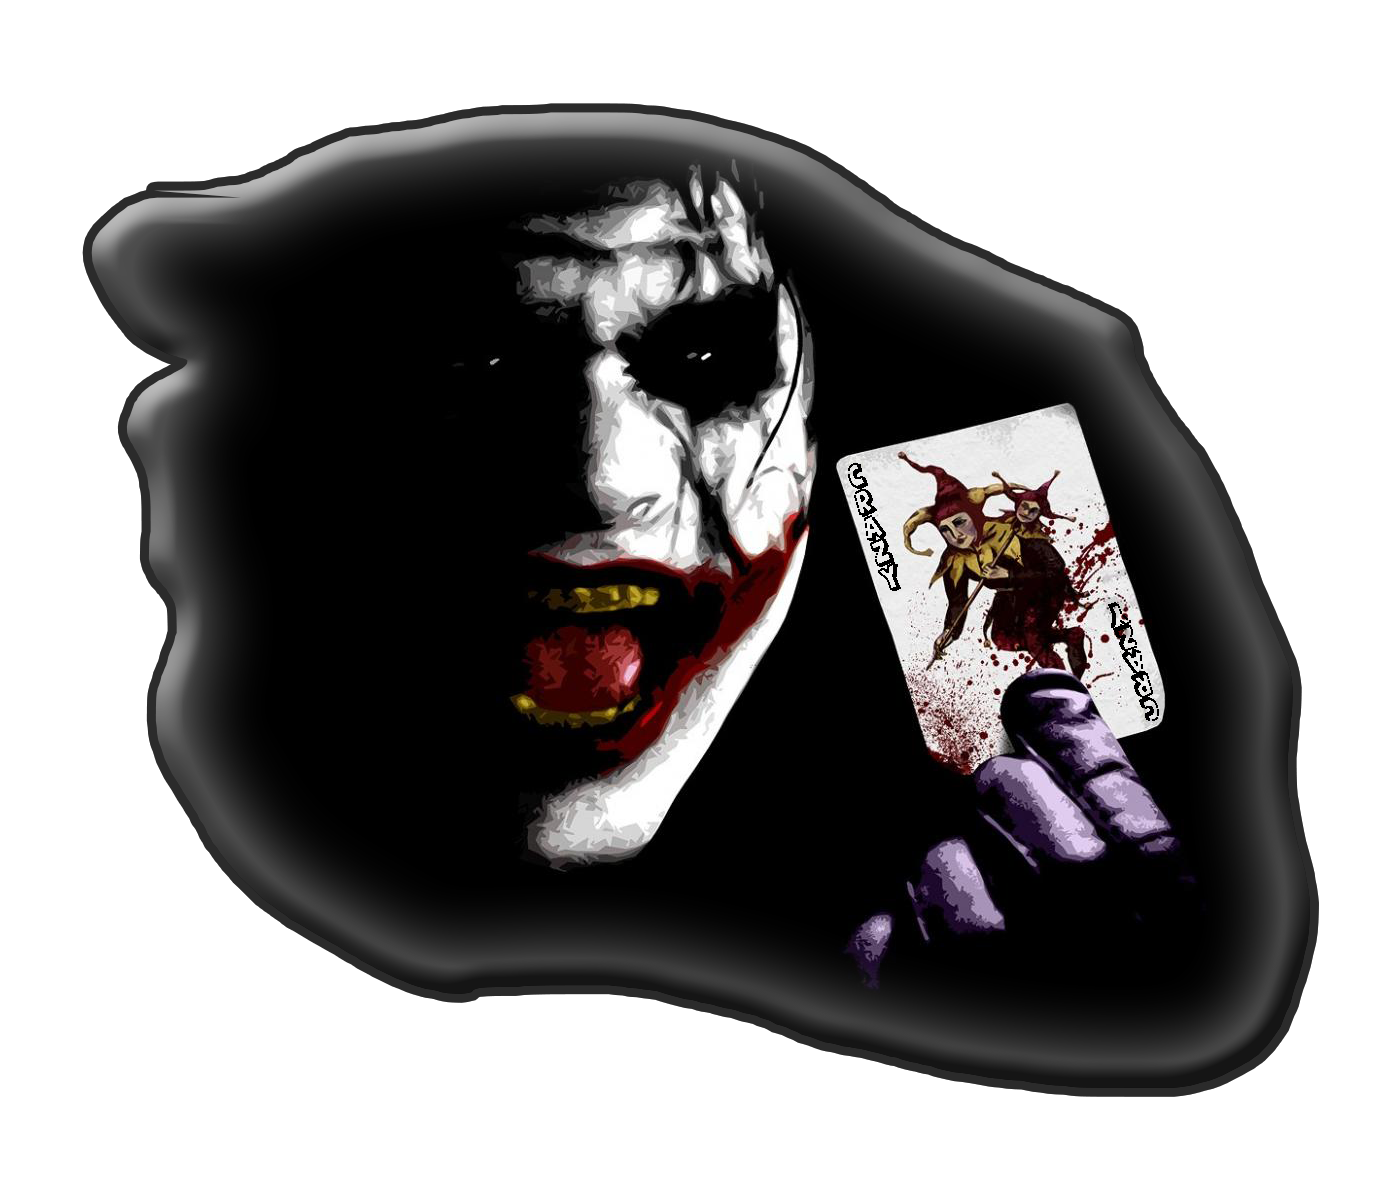 Joker Iphone Wallpaper Hd Posted By Samantha Anderson